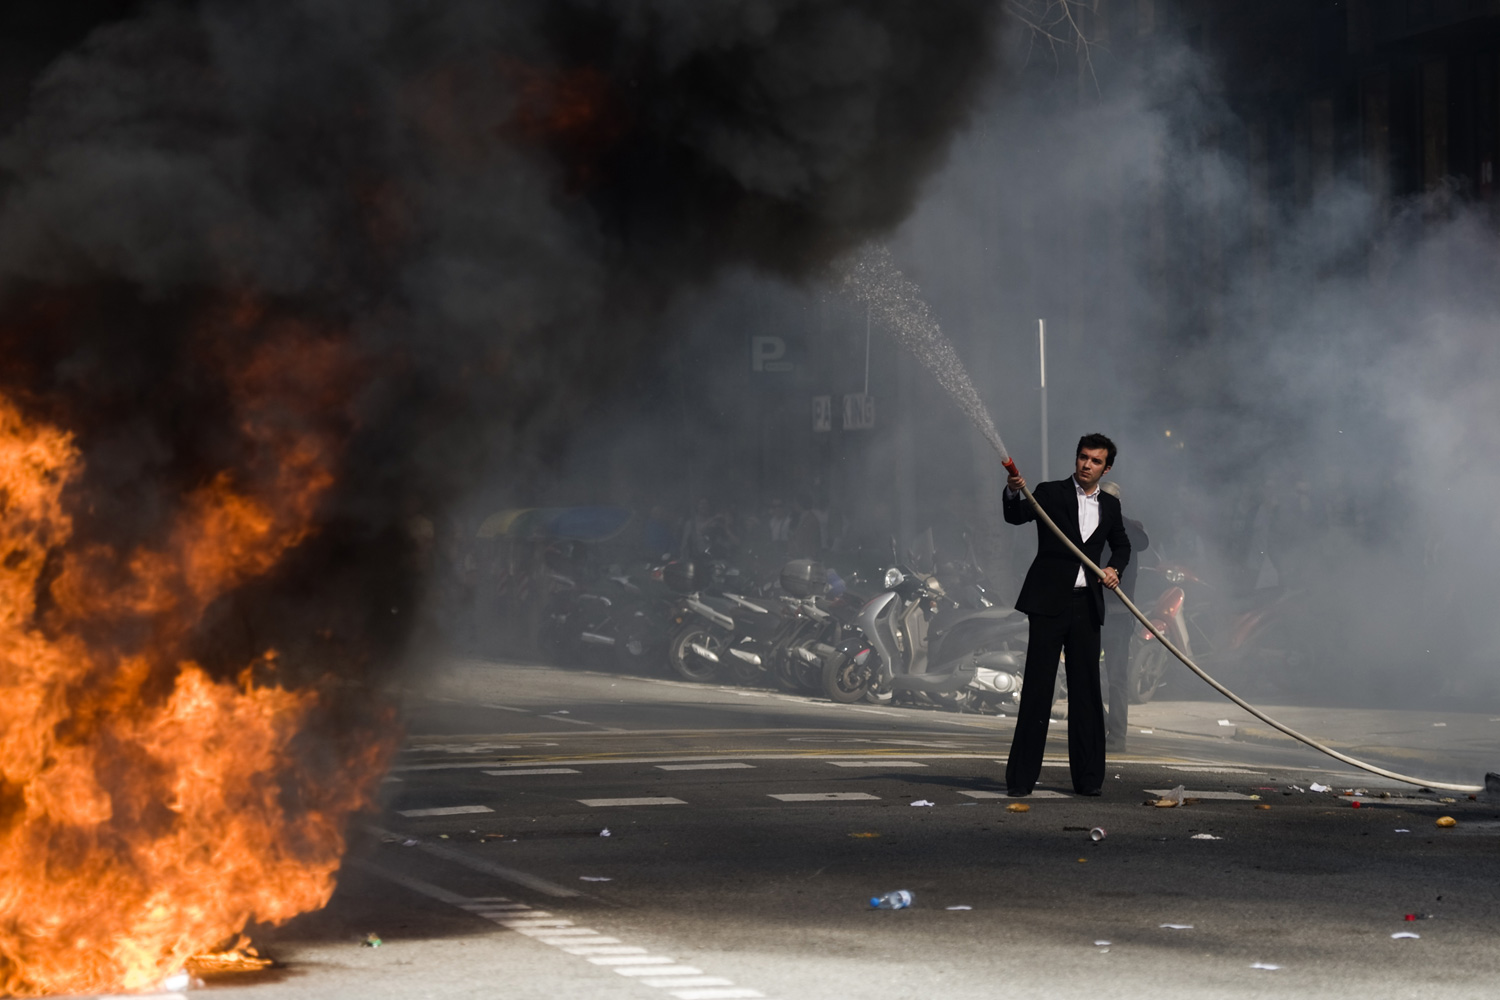 Feb. 29, 2012. A hotel receptionist tries to put out a fire during a demonstration in Barcelona.